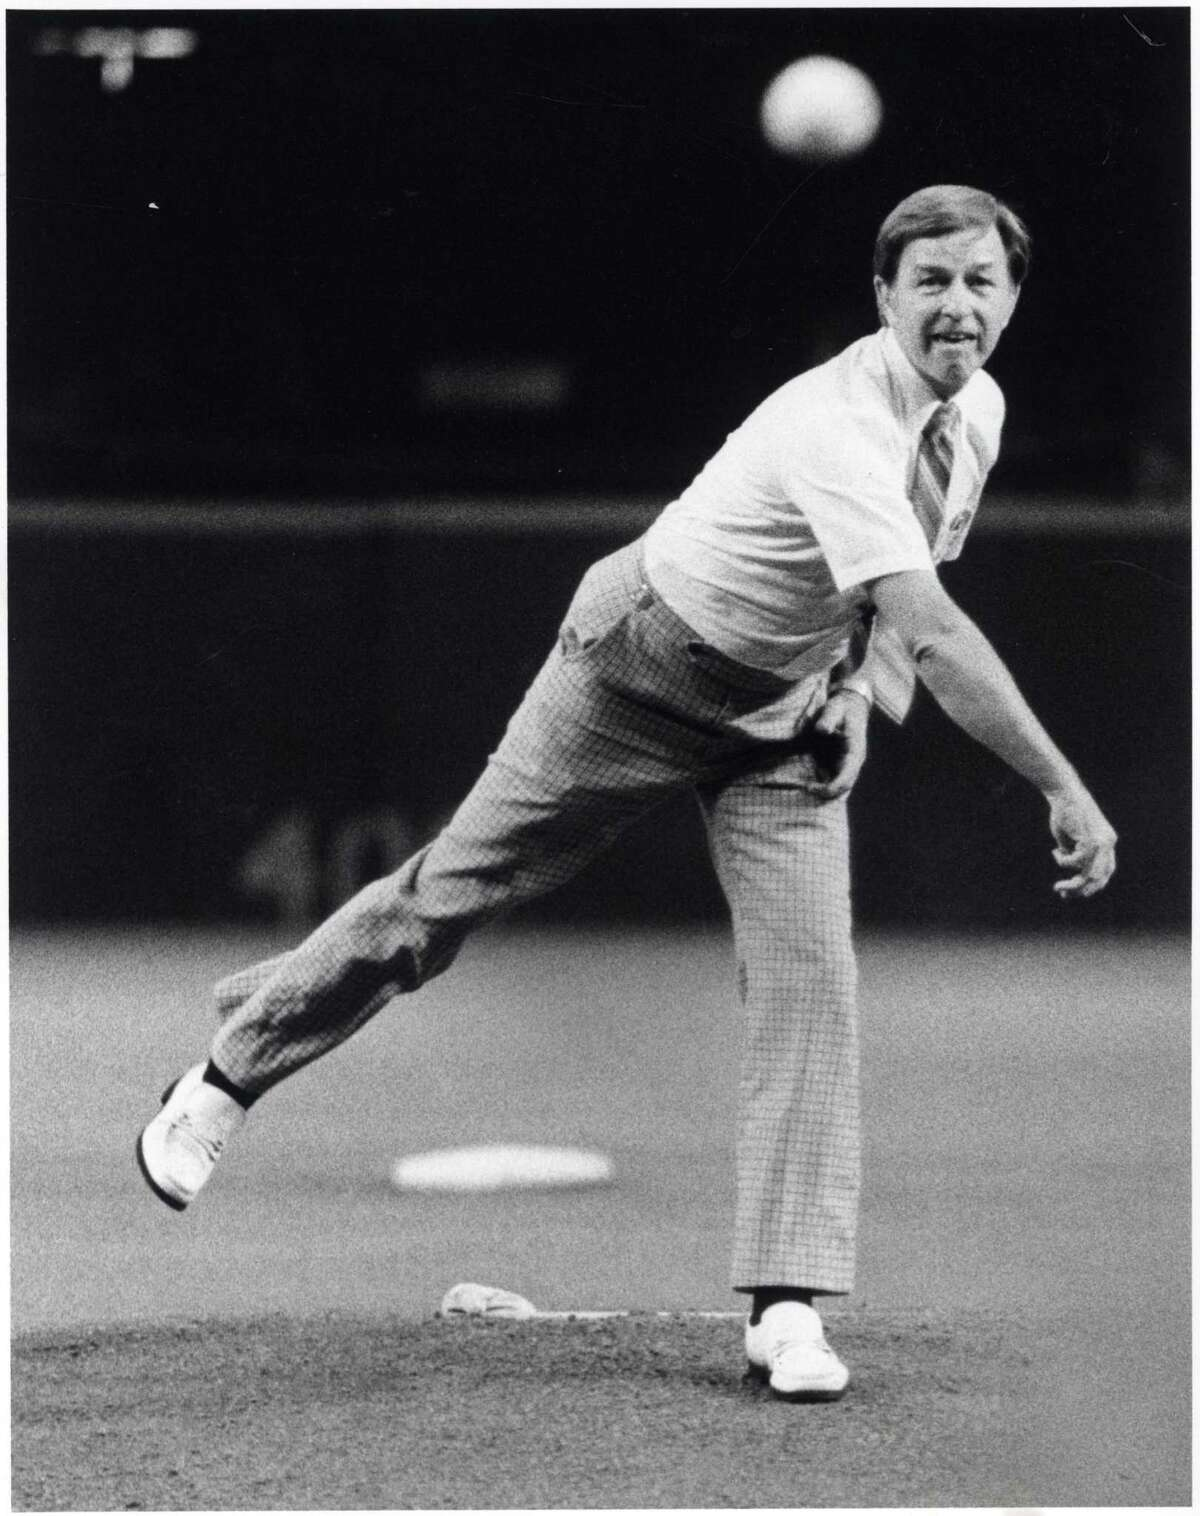 Pearland Mayor Tom Reid is shown throwing out the first pitch at the Houston Astrodome in 1980.